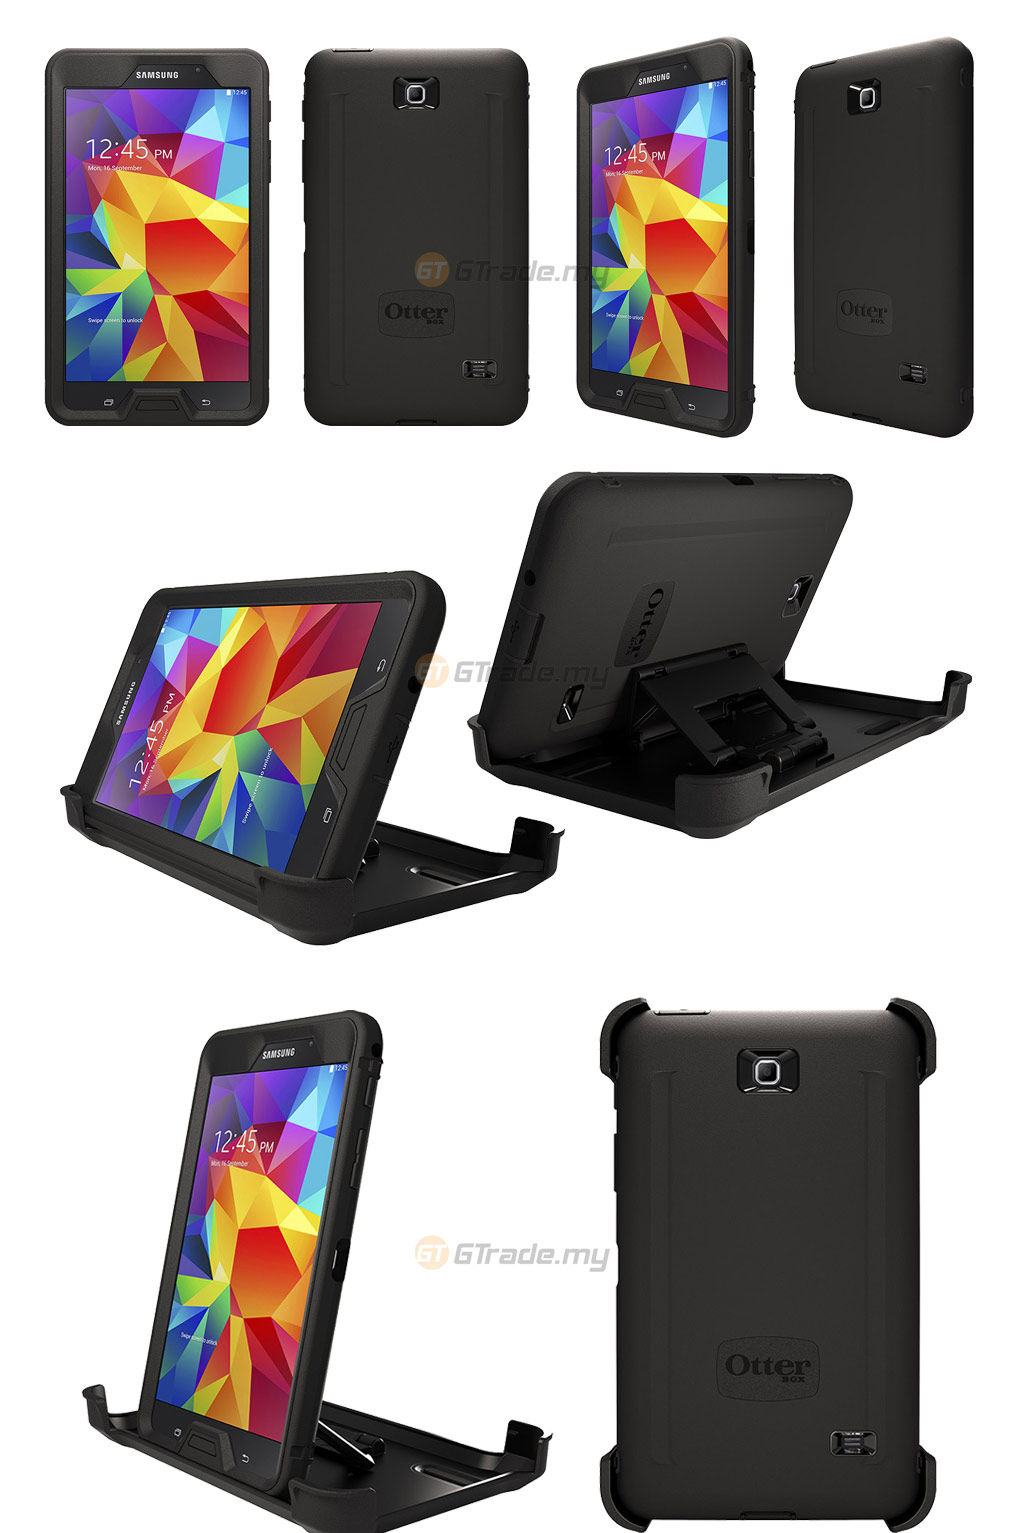 otterbox-defender-shell-stand-case-samsung-galaxy-tab-4-7.0-p